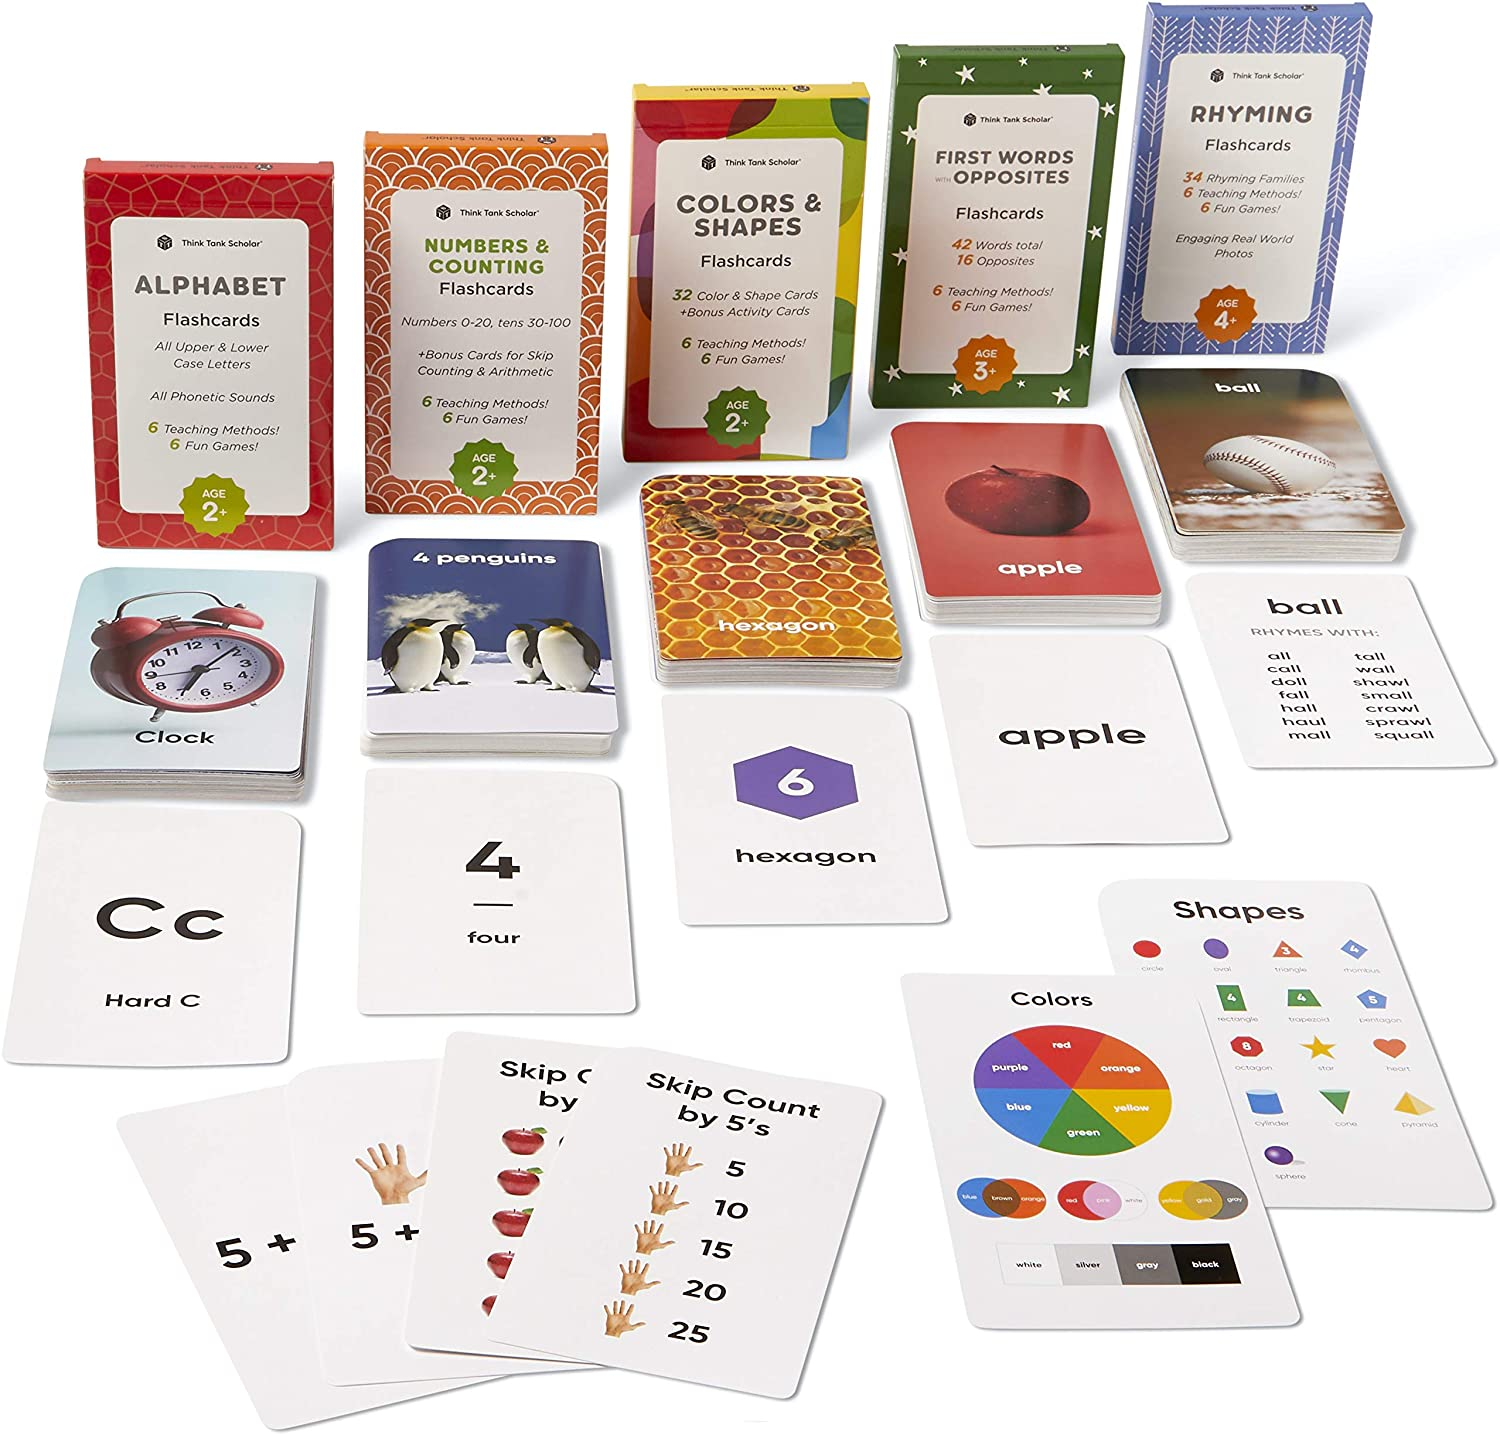 Think Tank Scholar Preschool Flash Cards Bundle - Alphabet (ABC) Letters, Math Numbers & Counting, Colors & Shapes, First Words & Opposites, & Rhyming for Toddlers Ages 2-6